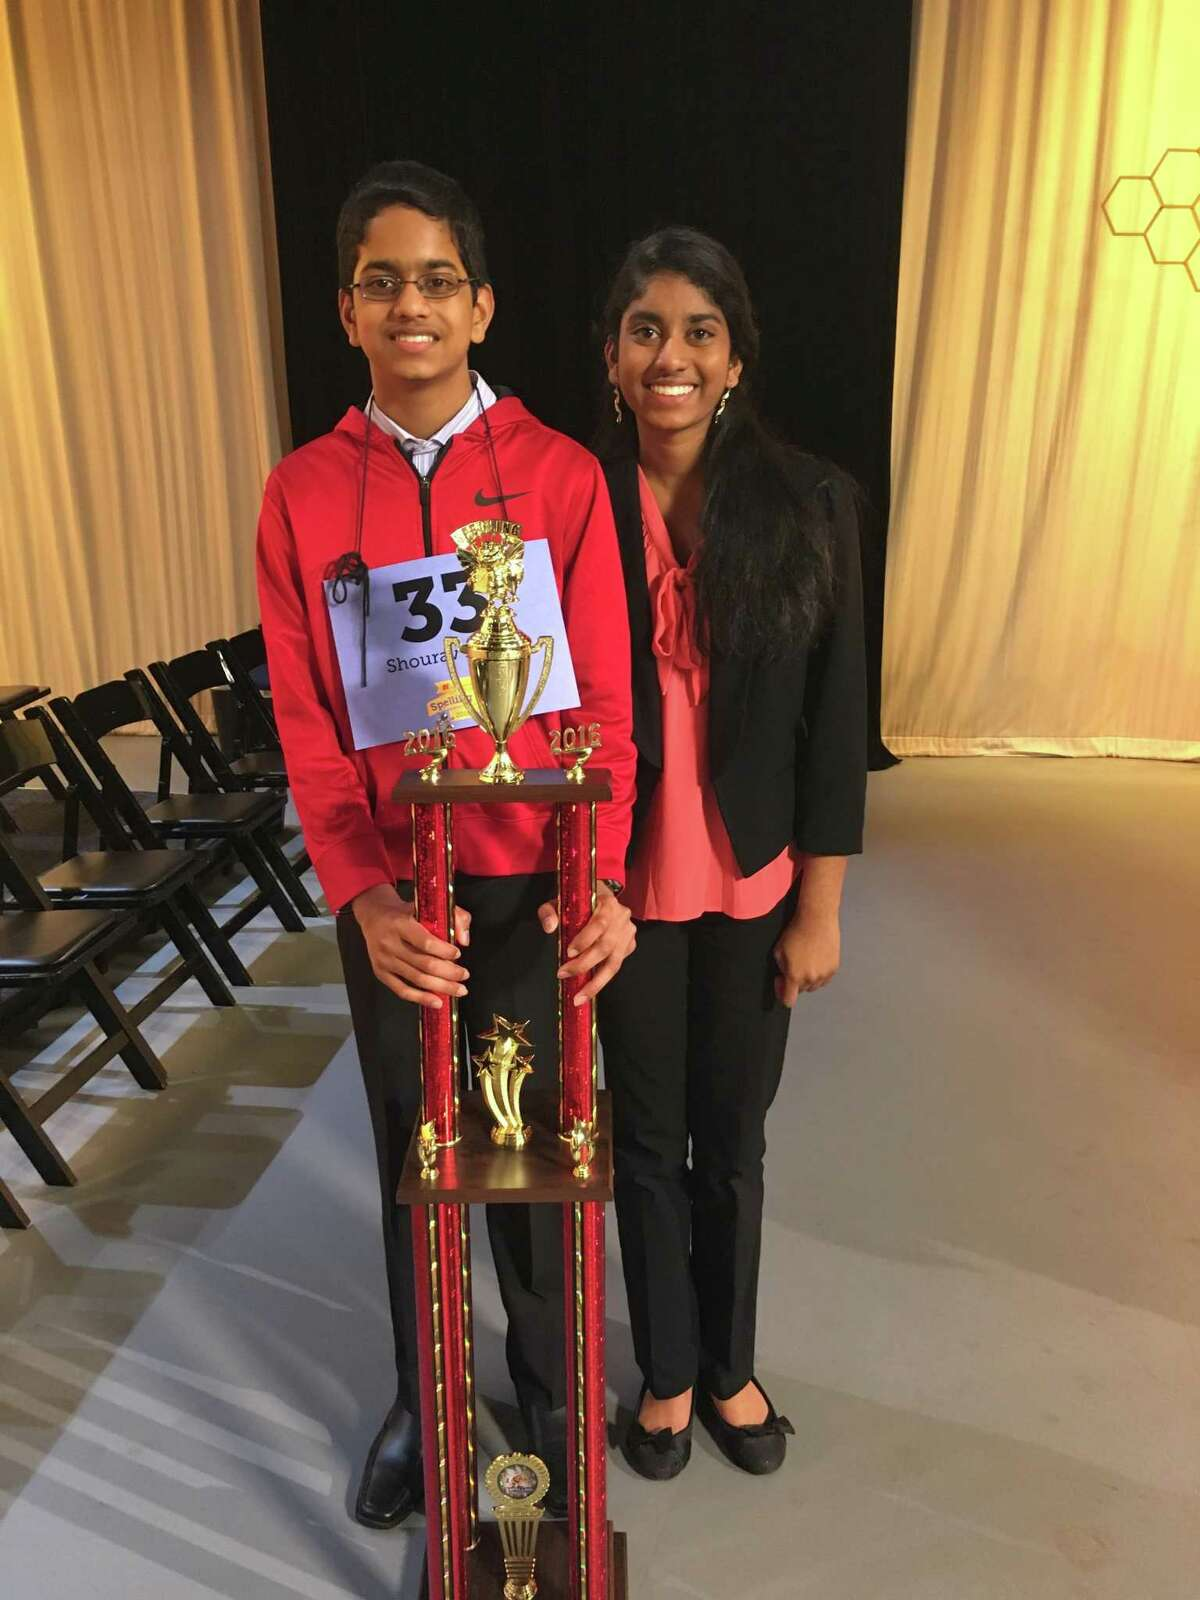 Shourav Dasari and Shobha Dasari take a photo with a trophy at the 2016 Houston Public Media Spelling Bee.